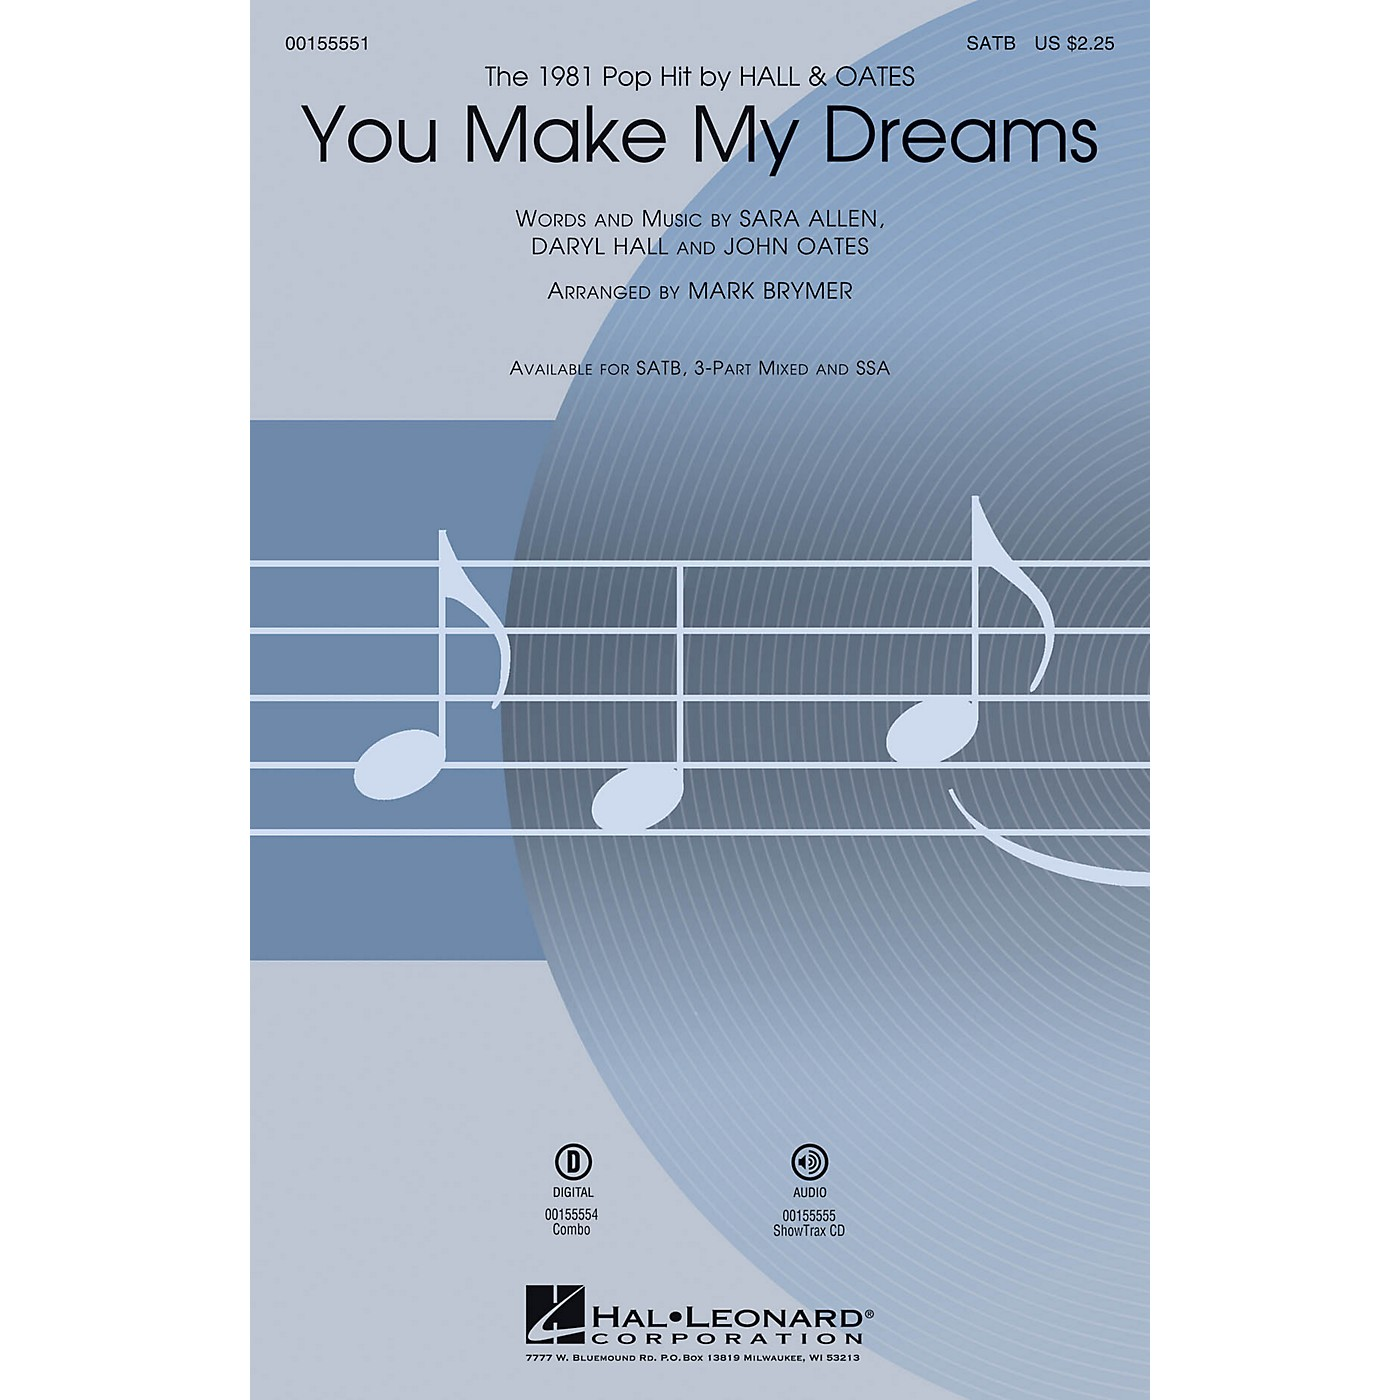 Hal Leonard You Make My Dreams ShowTrax CD by Hall & Oates Arranged by Mark Brymer thumbnail